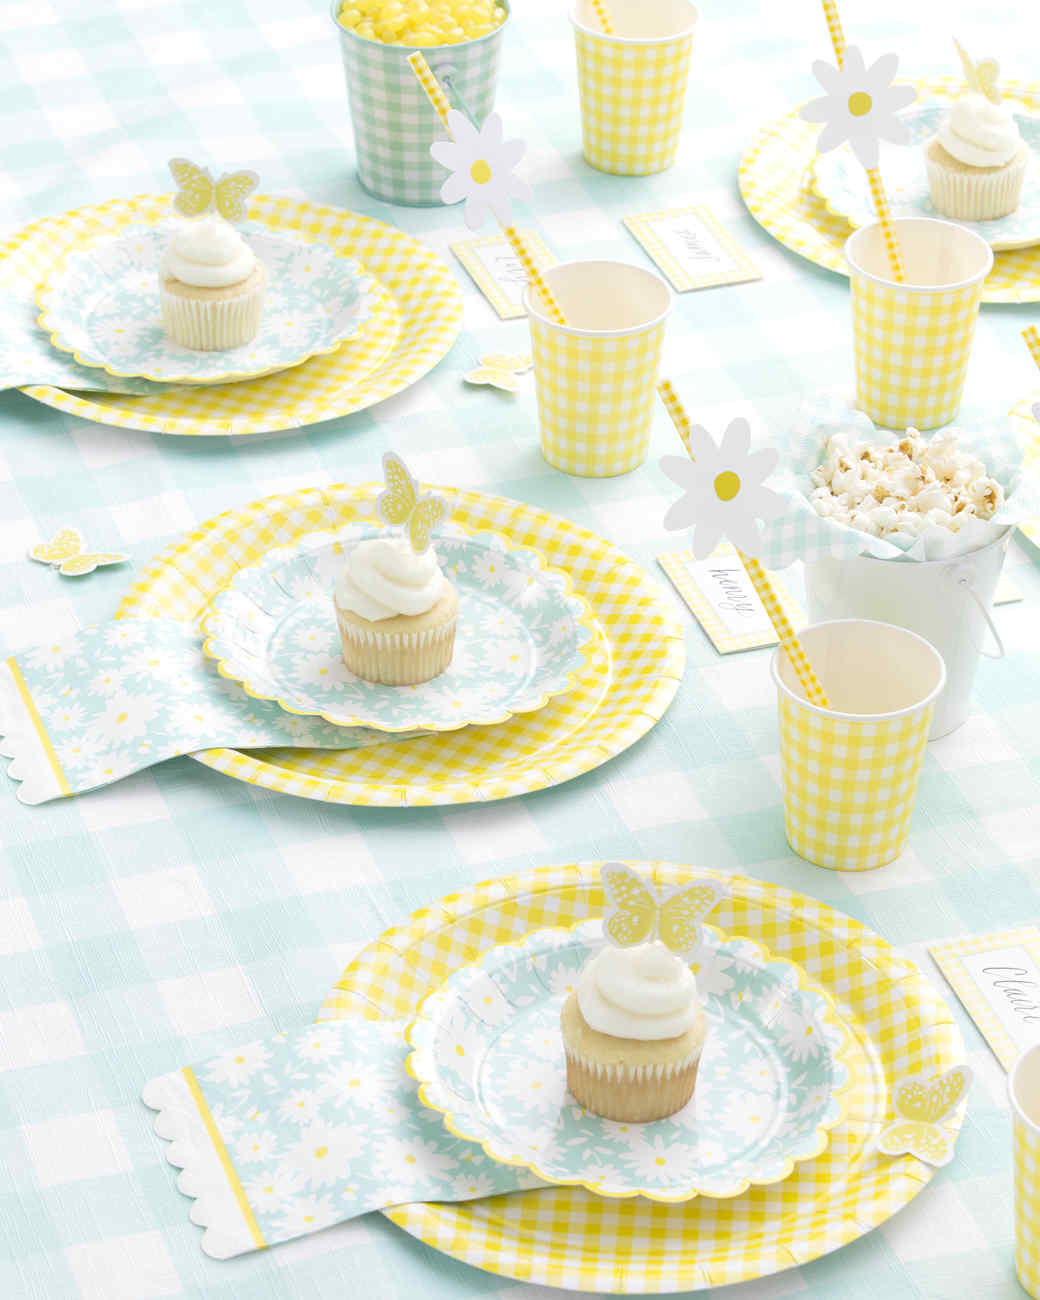 michaels yellow blue spring place setting cupcakes popcorn